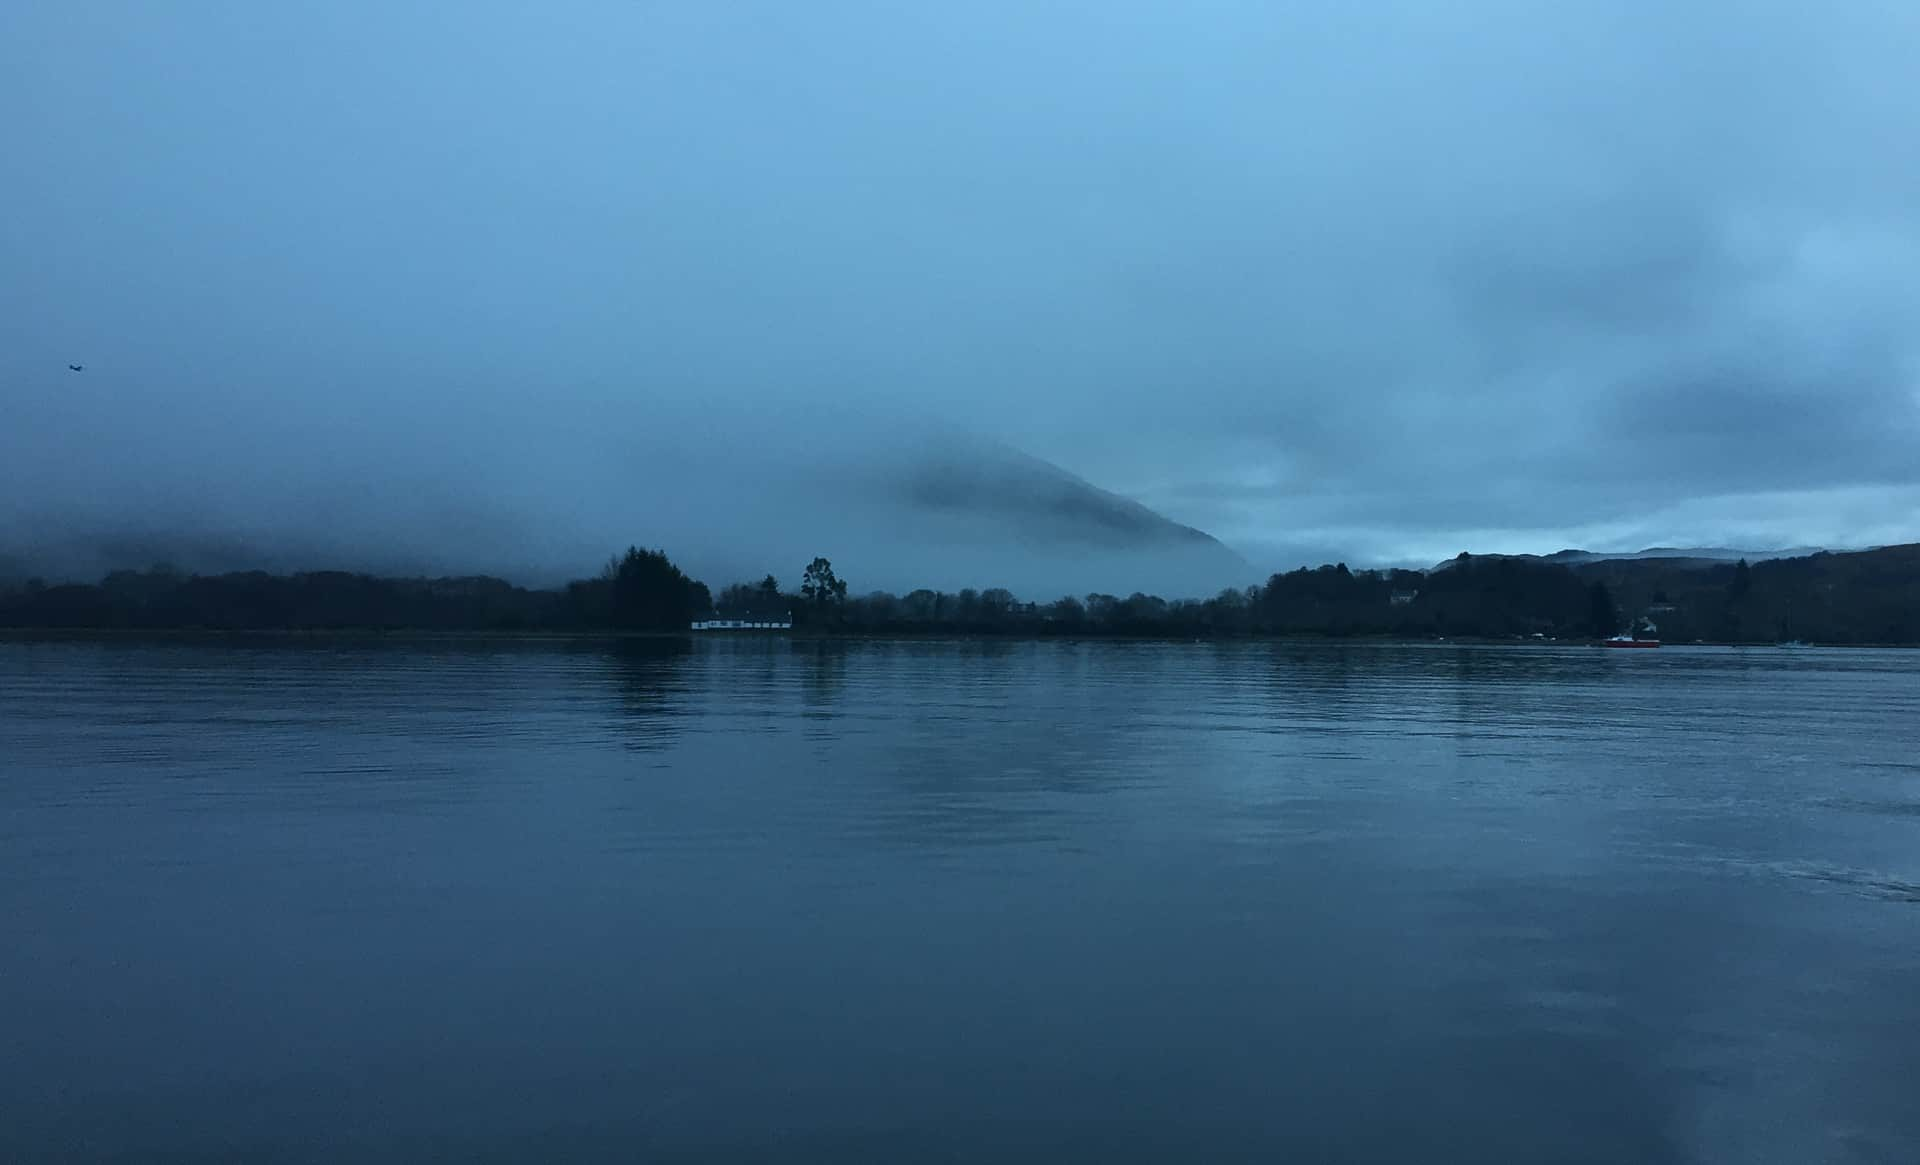 A grey and foggy start to the day at Taynuilt, Loch Etive